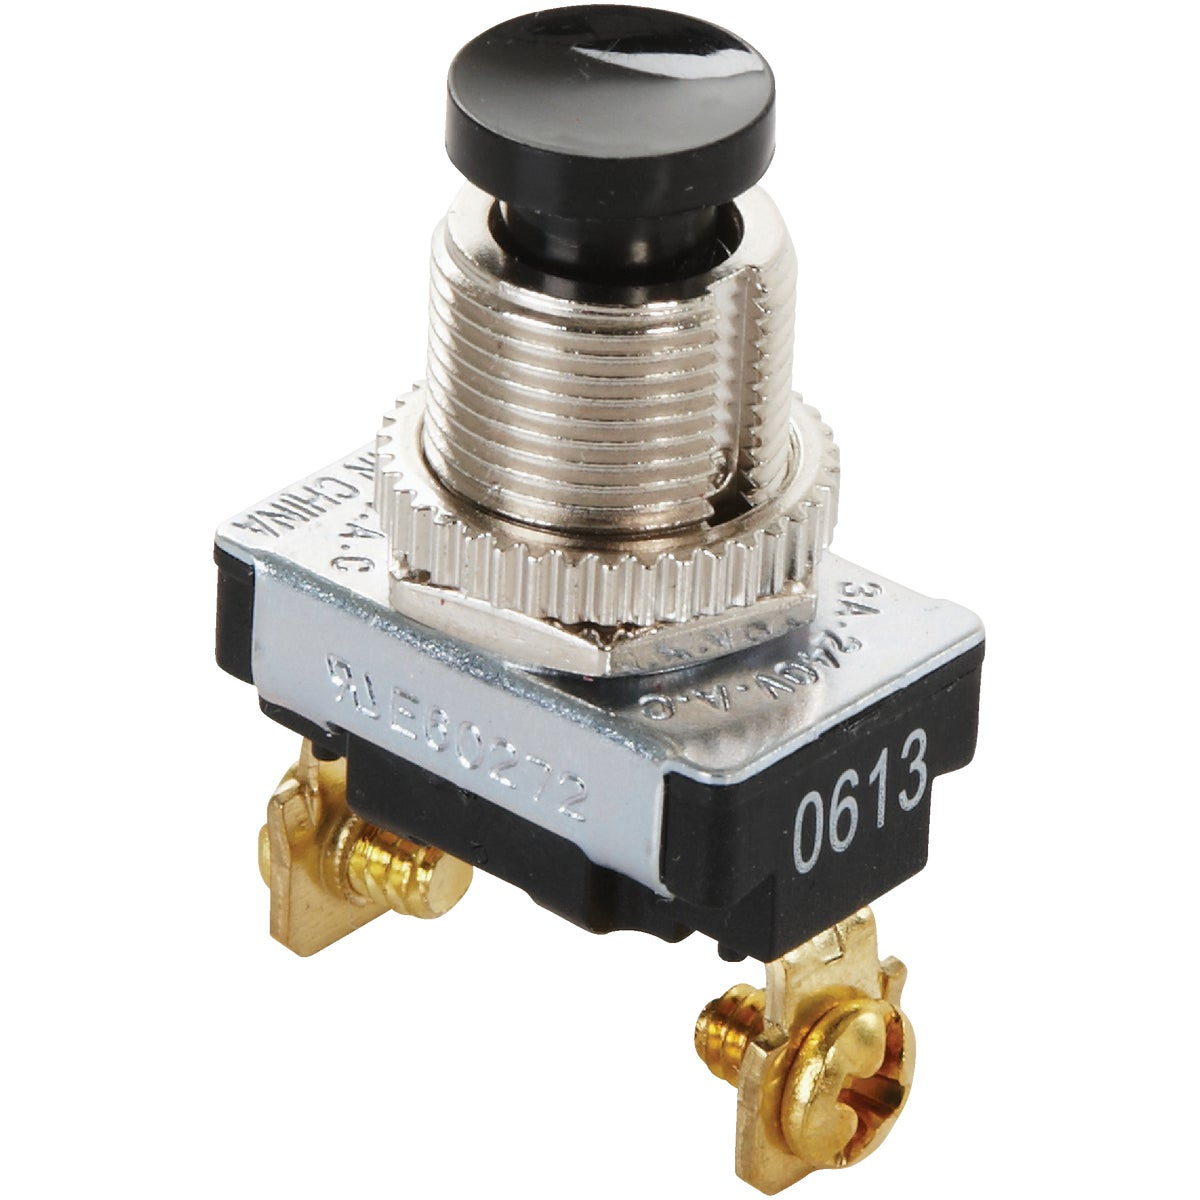 PUSH-BUTTON SWITCH - GSW-22 by G B Electrical Inc